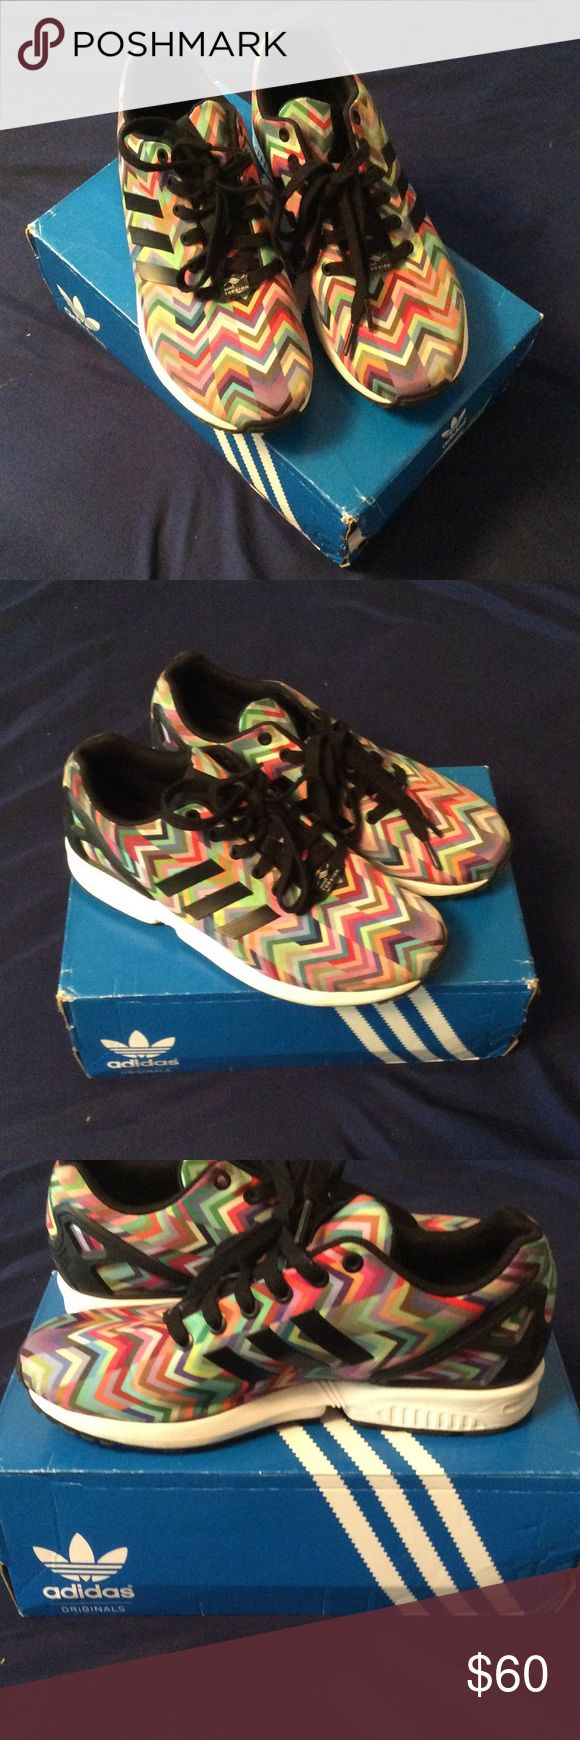 Adidas ZX FLUX Comes in original shoe box Adidas Shoes Athletic Shoes